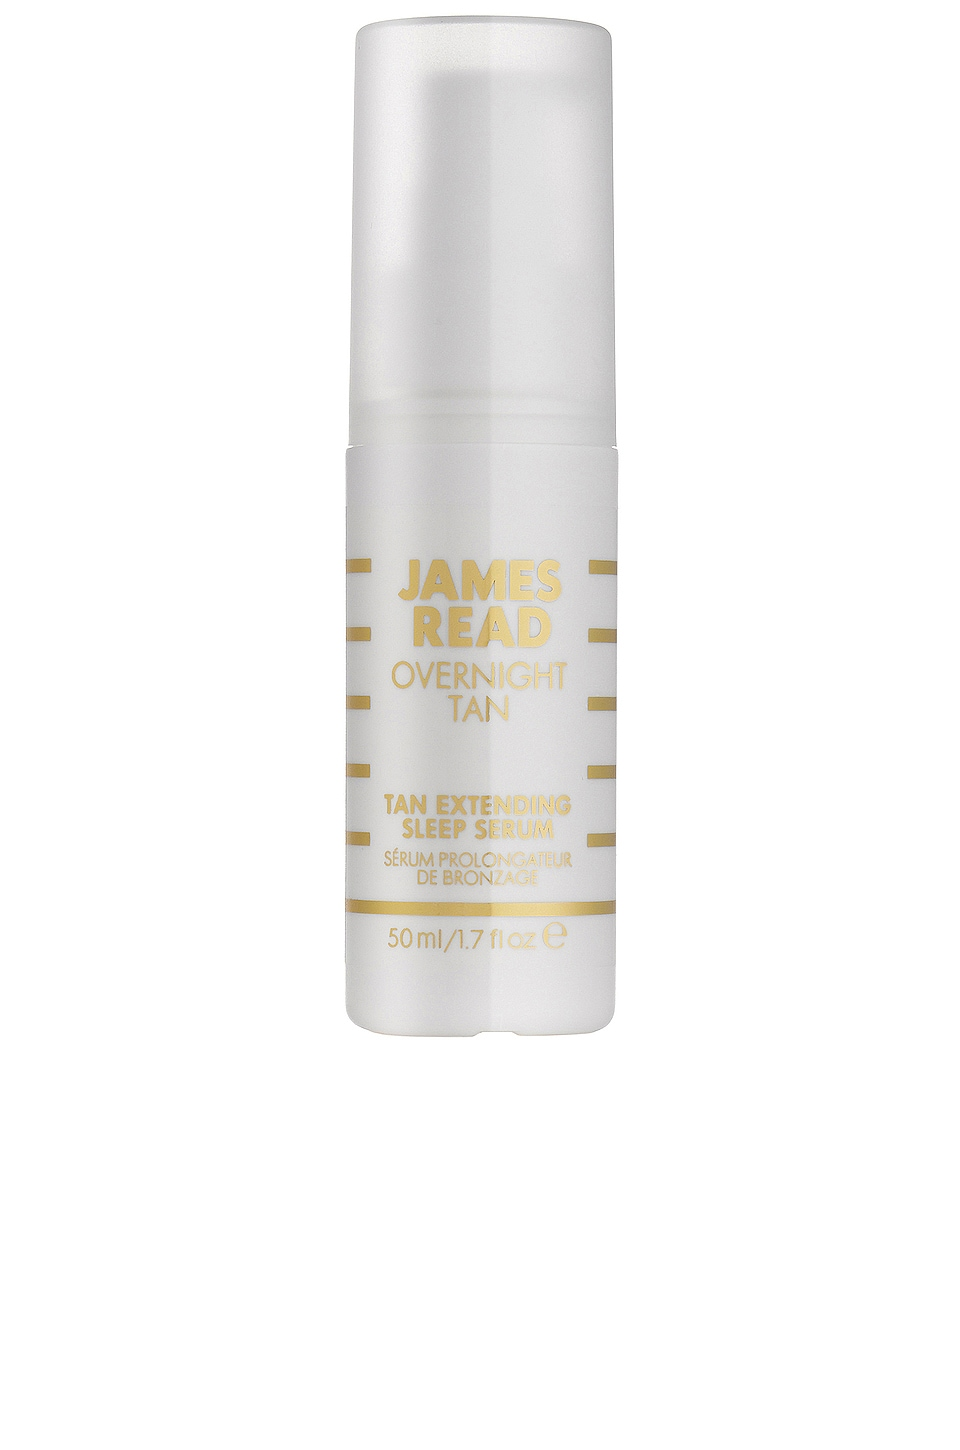 James Read Tan Tan Extending Sleep Serum